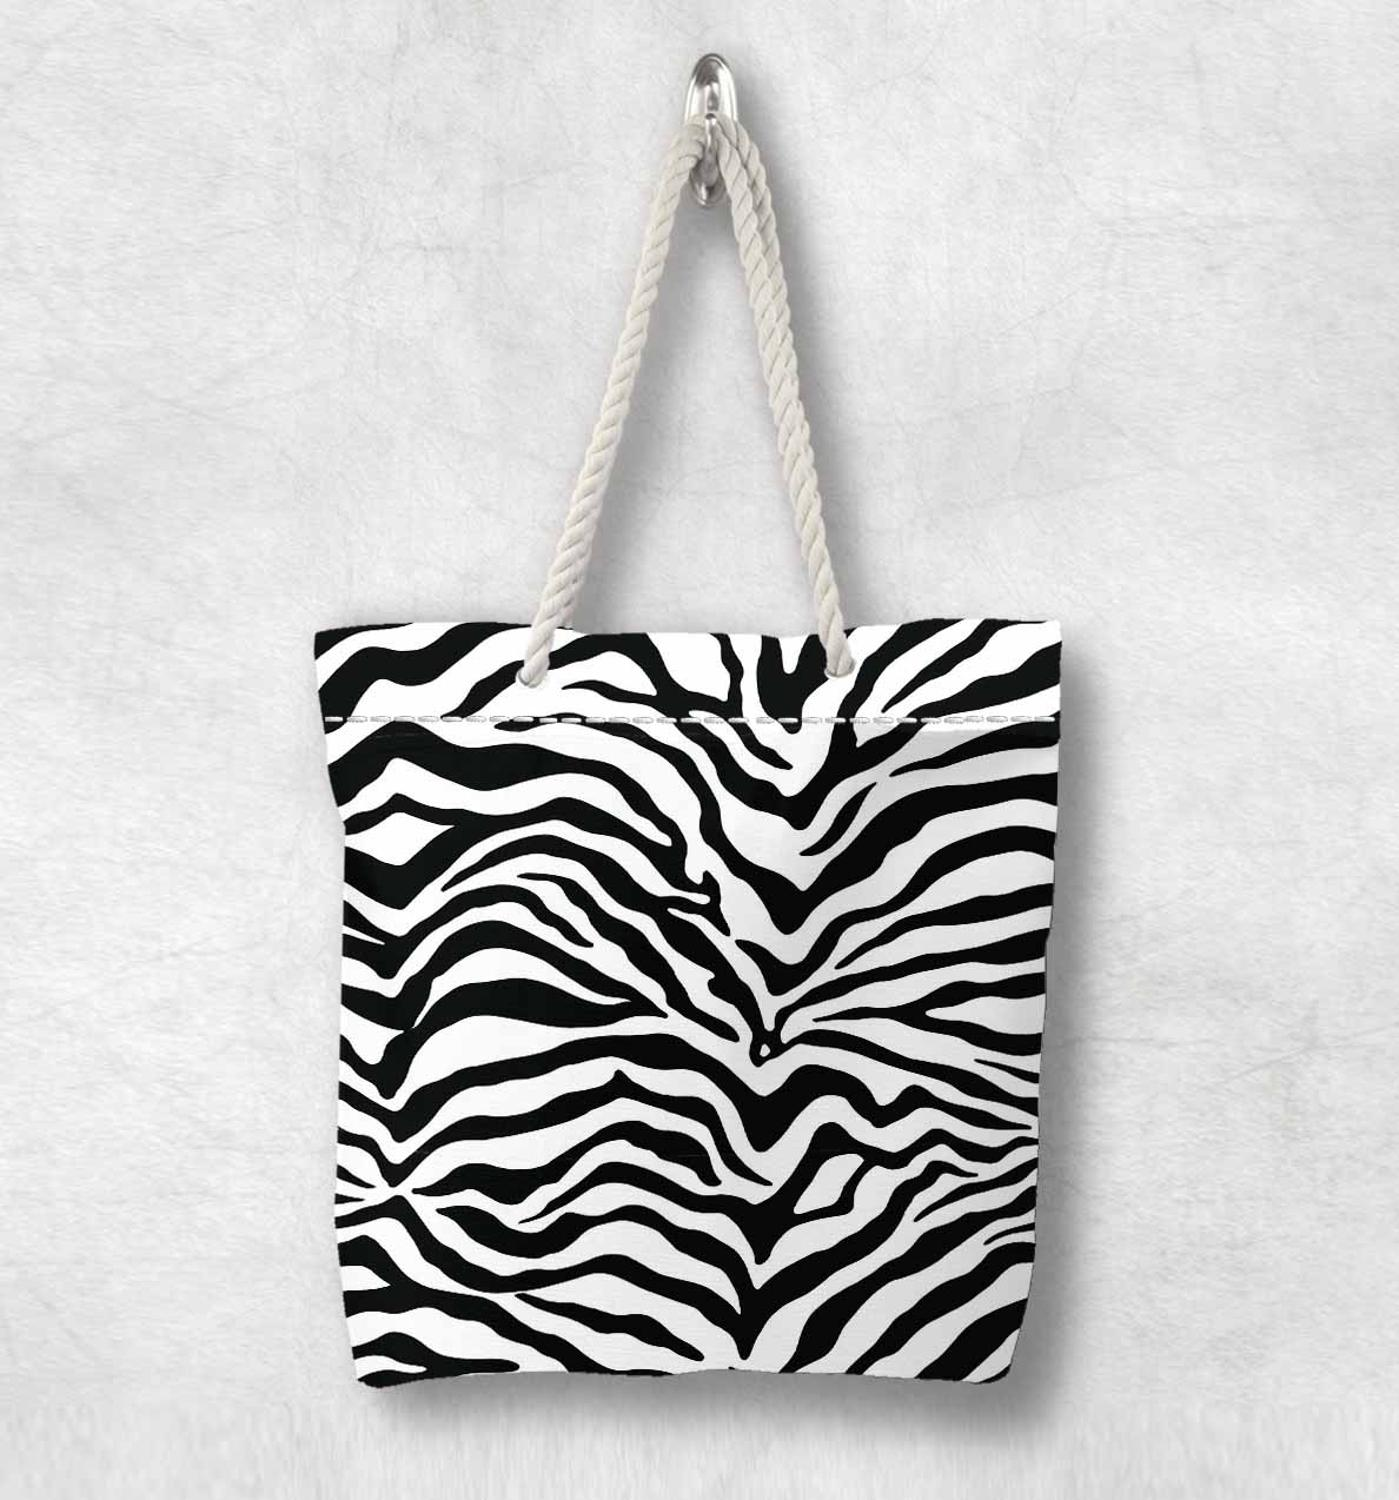 Else Black White Zebra Fur Design New Fashion White Rope Handle Canvas Bag Cotton Canvas Zippered Tote Bag Shoulder Bag